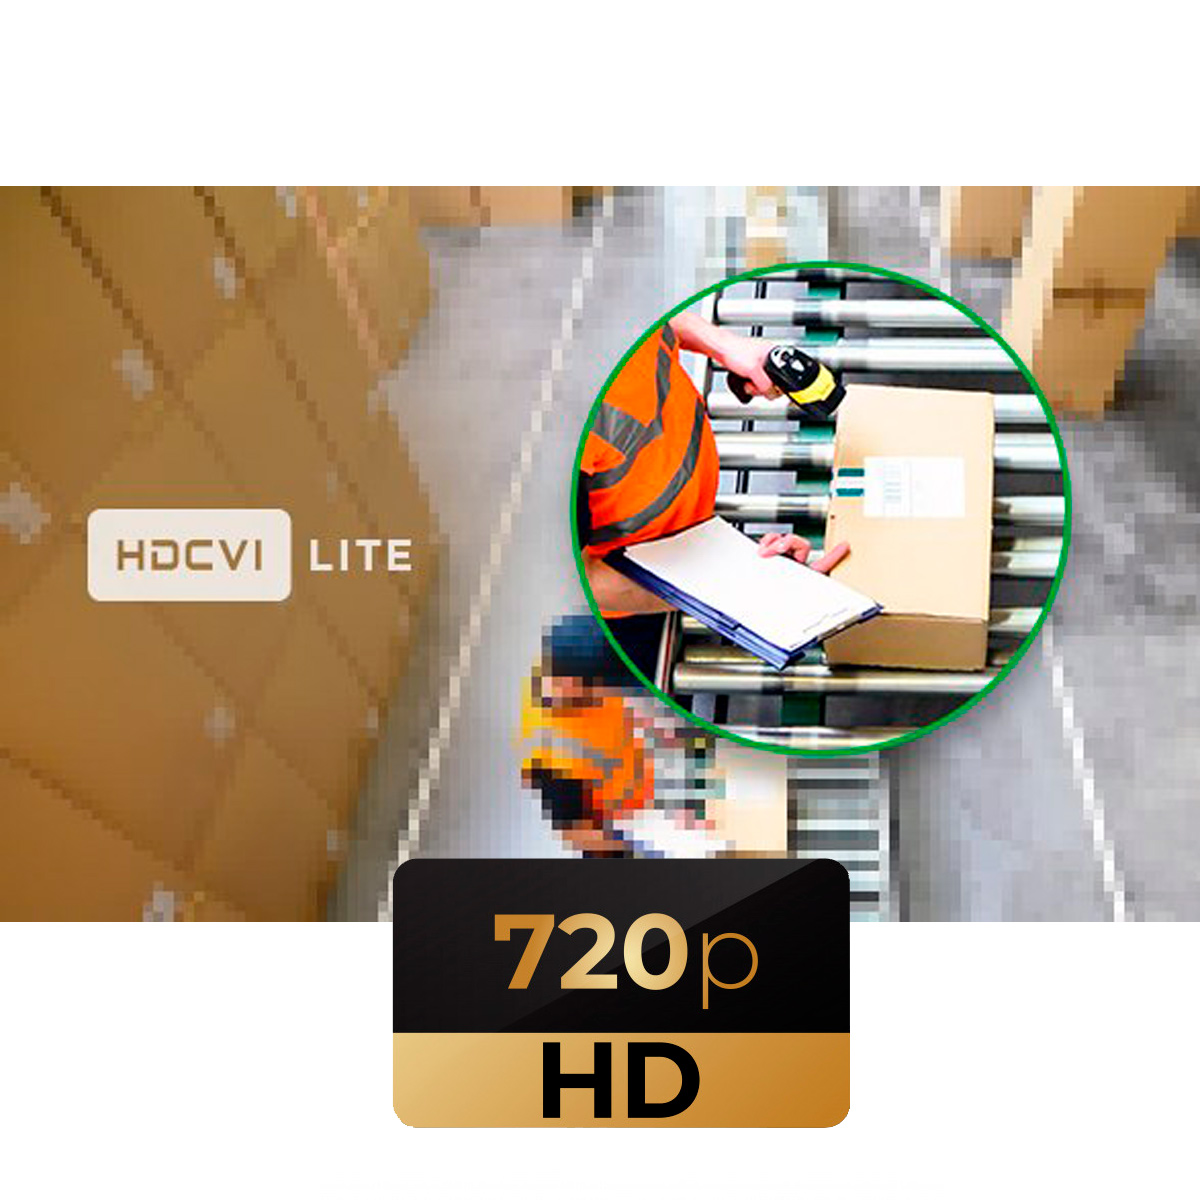 kit-cameras-de-seguranca-full-hd-vhl-1220b-02